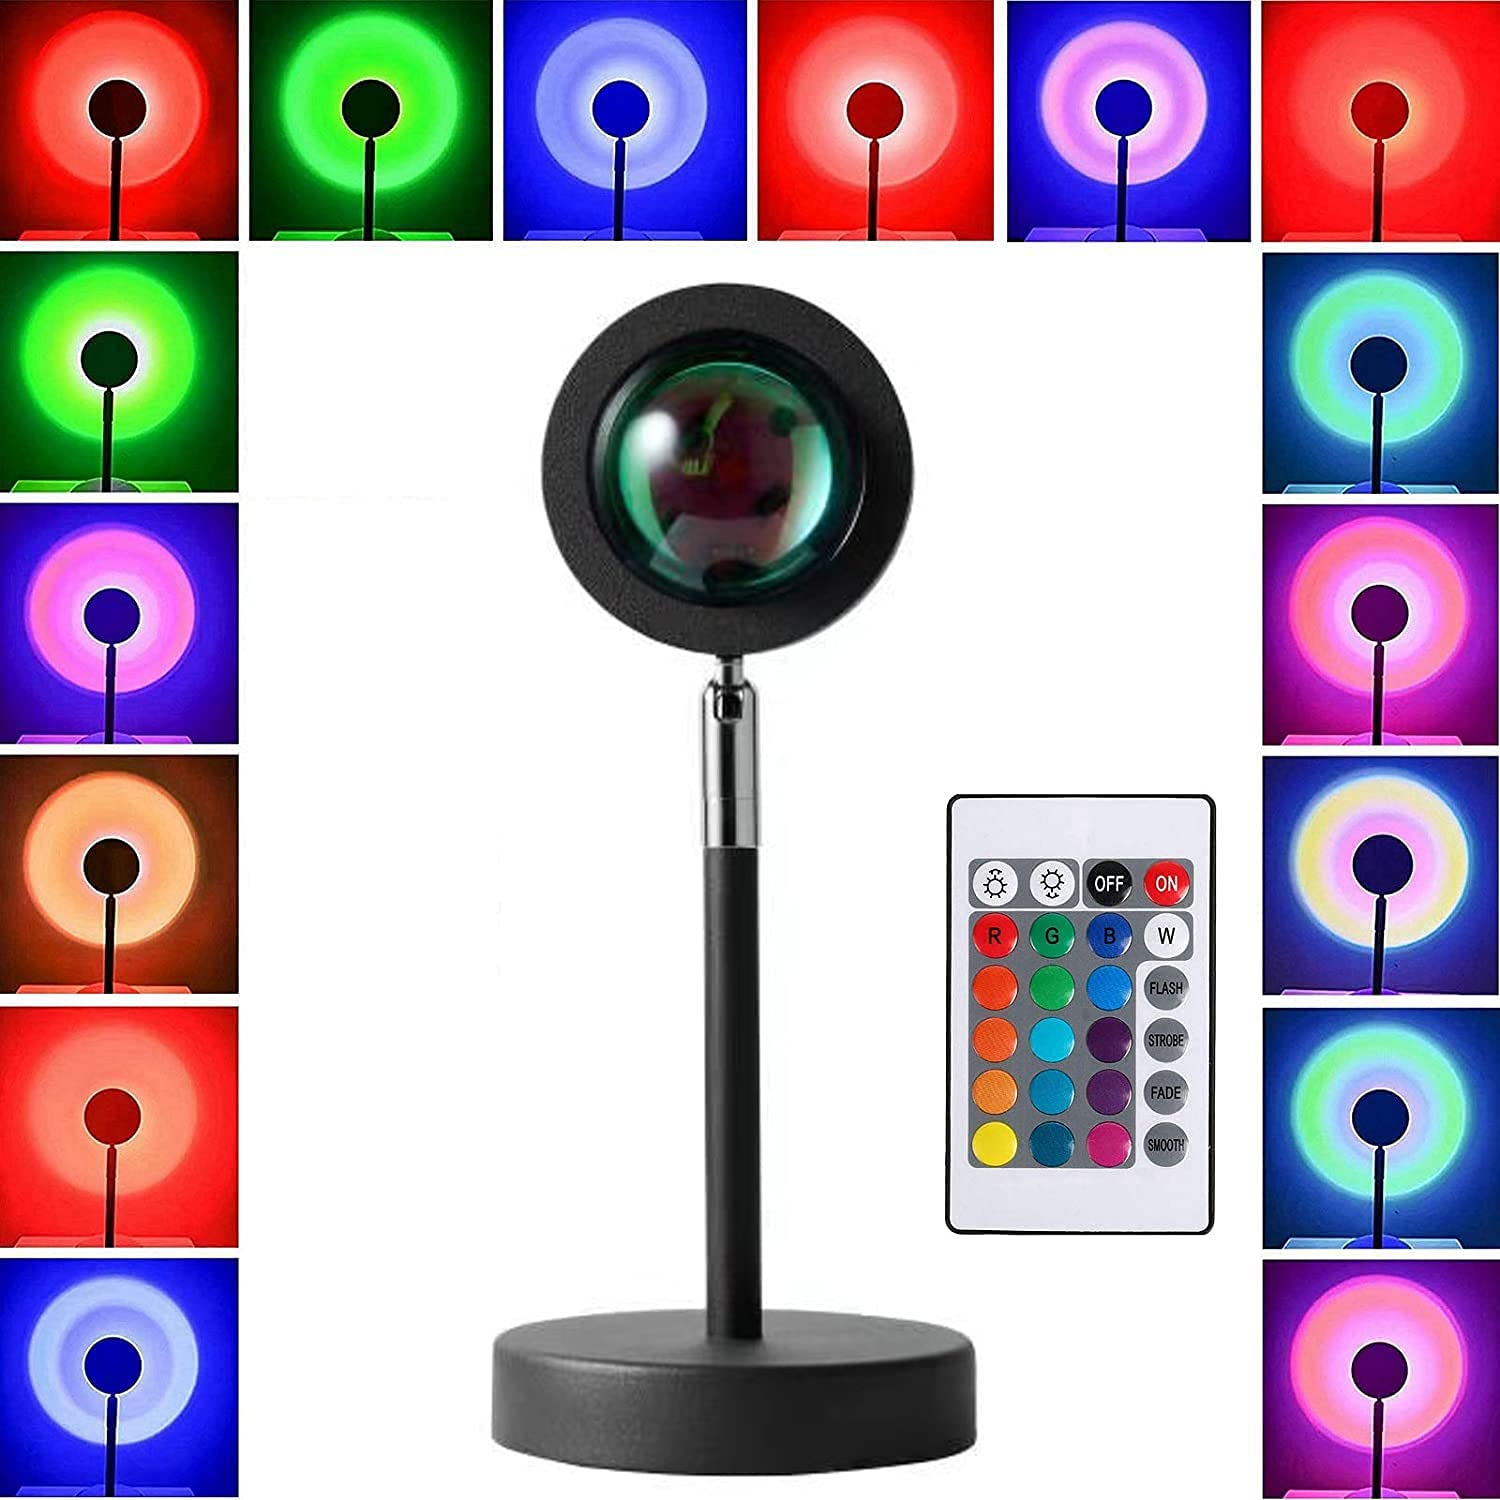 Projector Sunset Lamp, 16 in 1 Color Changing Light 180 Degree Rotation Projection Led Night Light for Photography, Selfie, Tiktok, Living Room, Bedroom and Home Decor, USB Charging